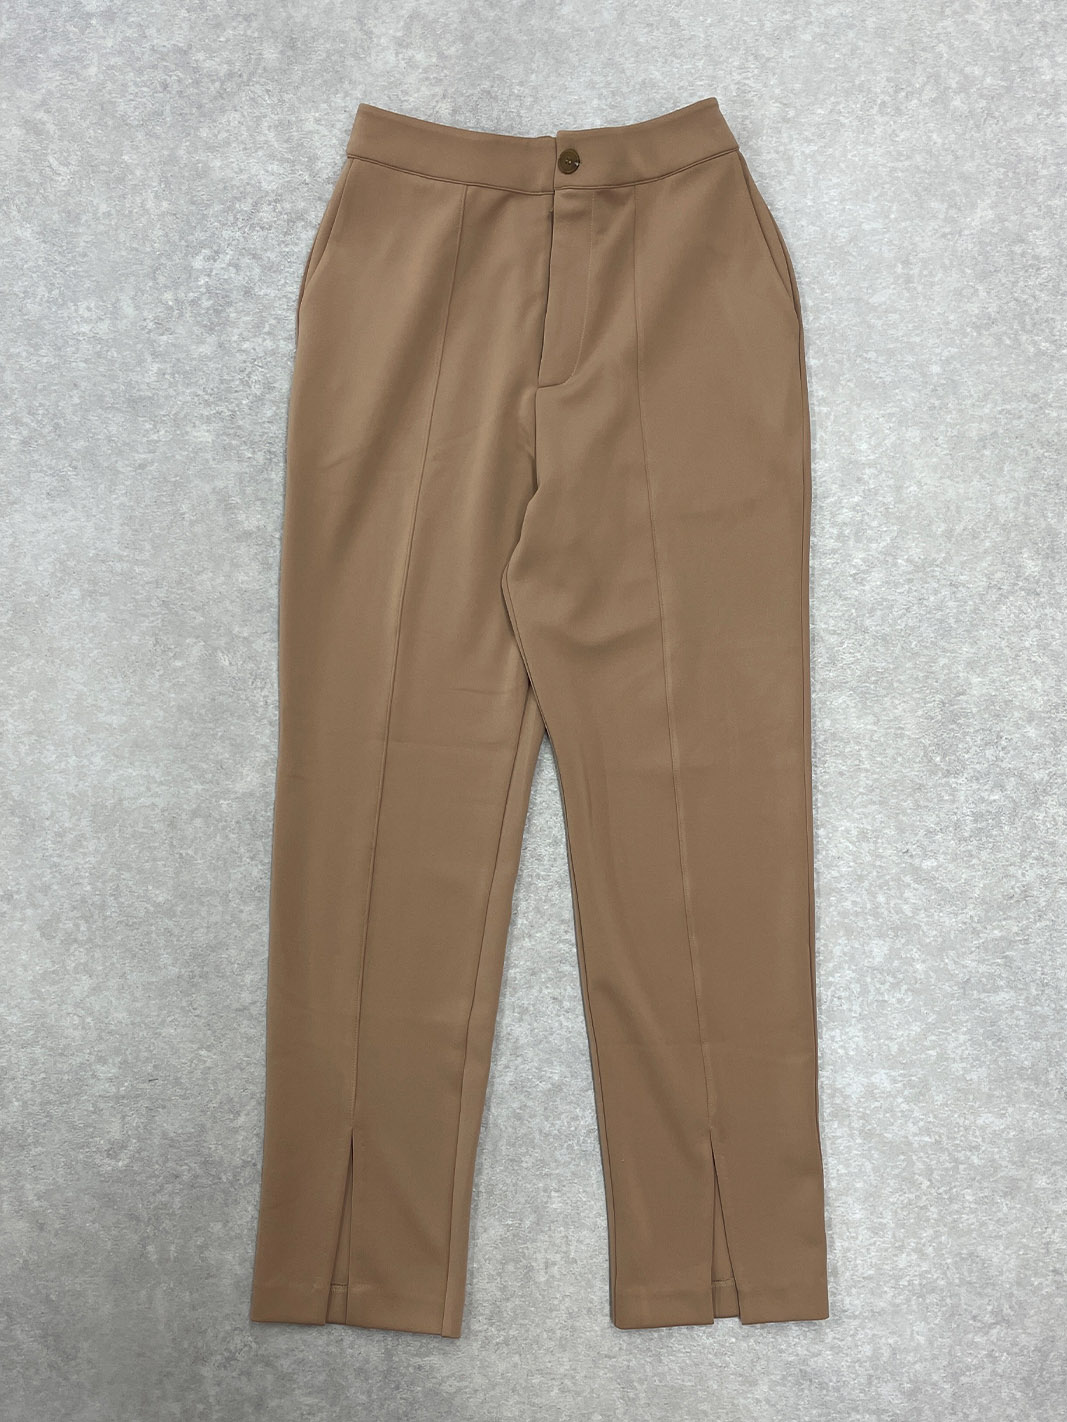 【SOLD OUT】スリットAdjustable Pants キャメル